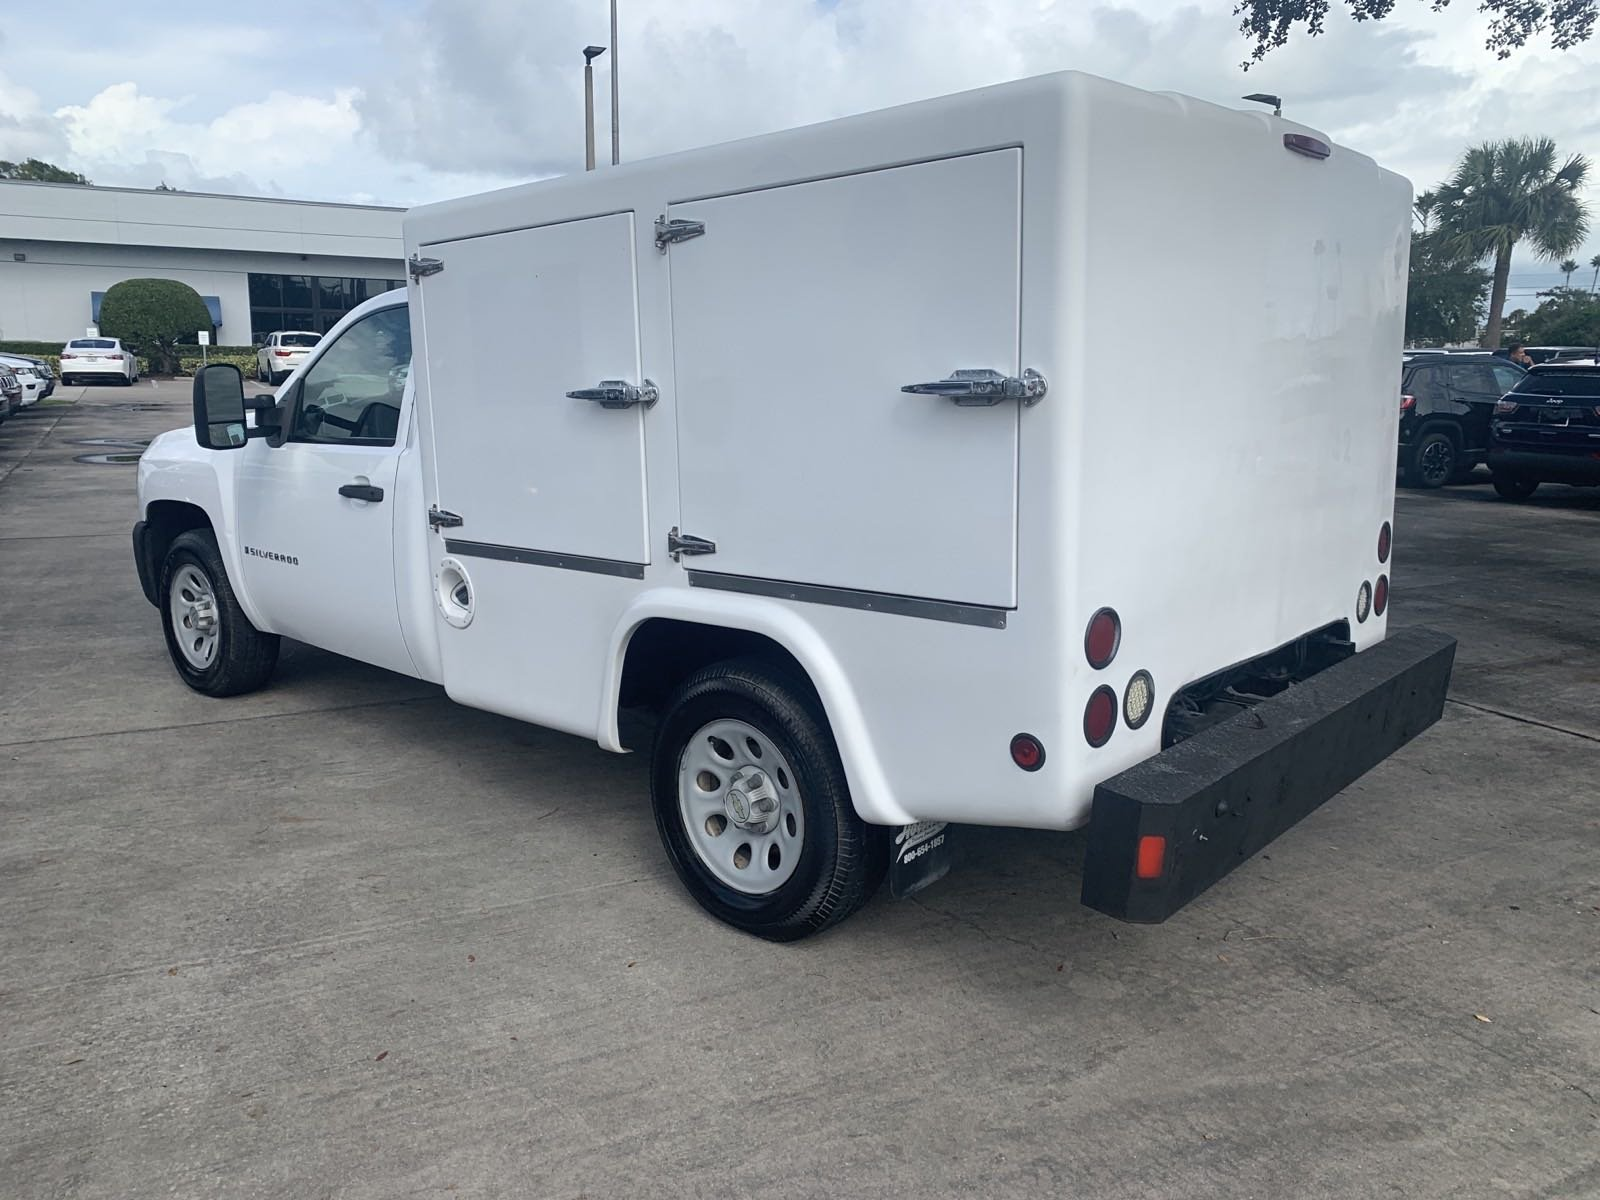 Pre-Owned 2008 Chevrolet Silverado 1500 HOT FOOD DELIVERY TRUCK